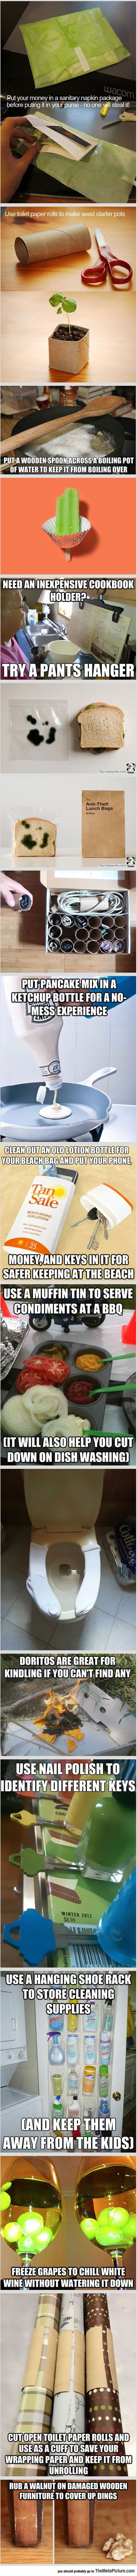 Possibly The Most Creative Life Hacks Ever